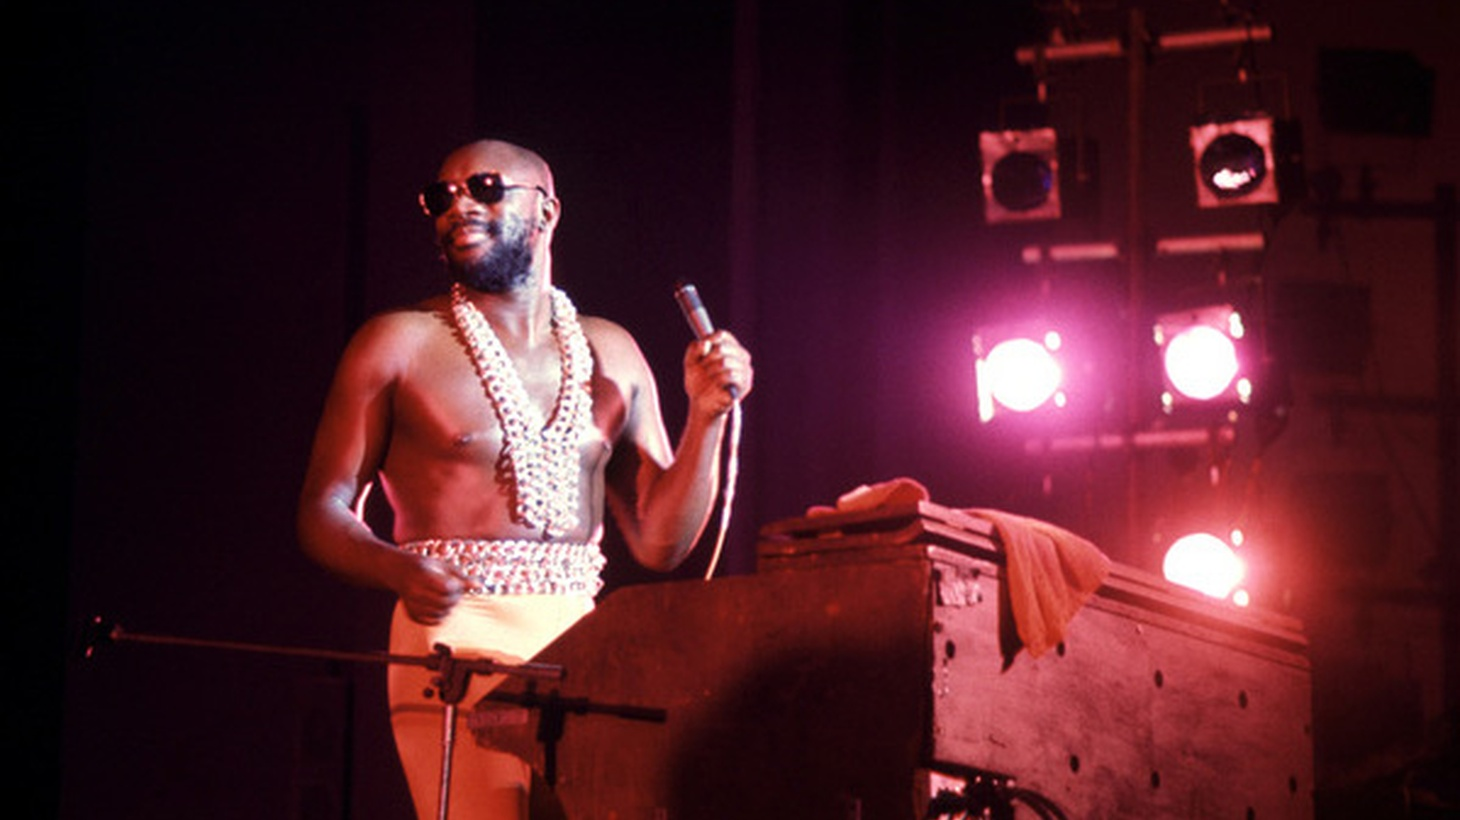 In 1971 Isaac Hayes wrote and recorded a song that would change his life.